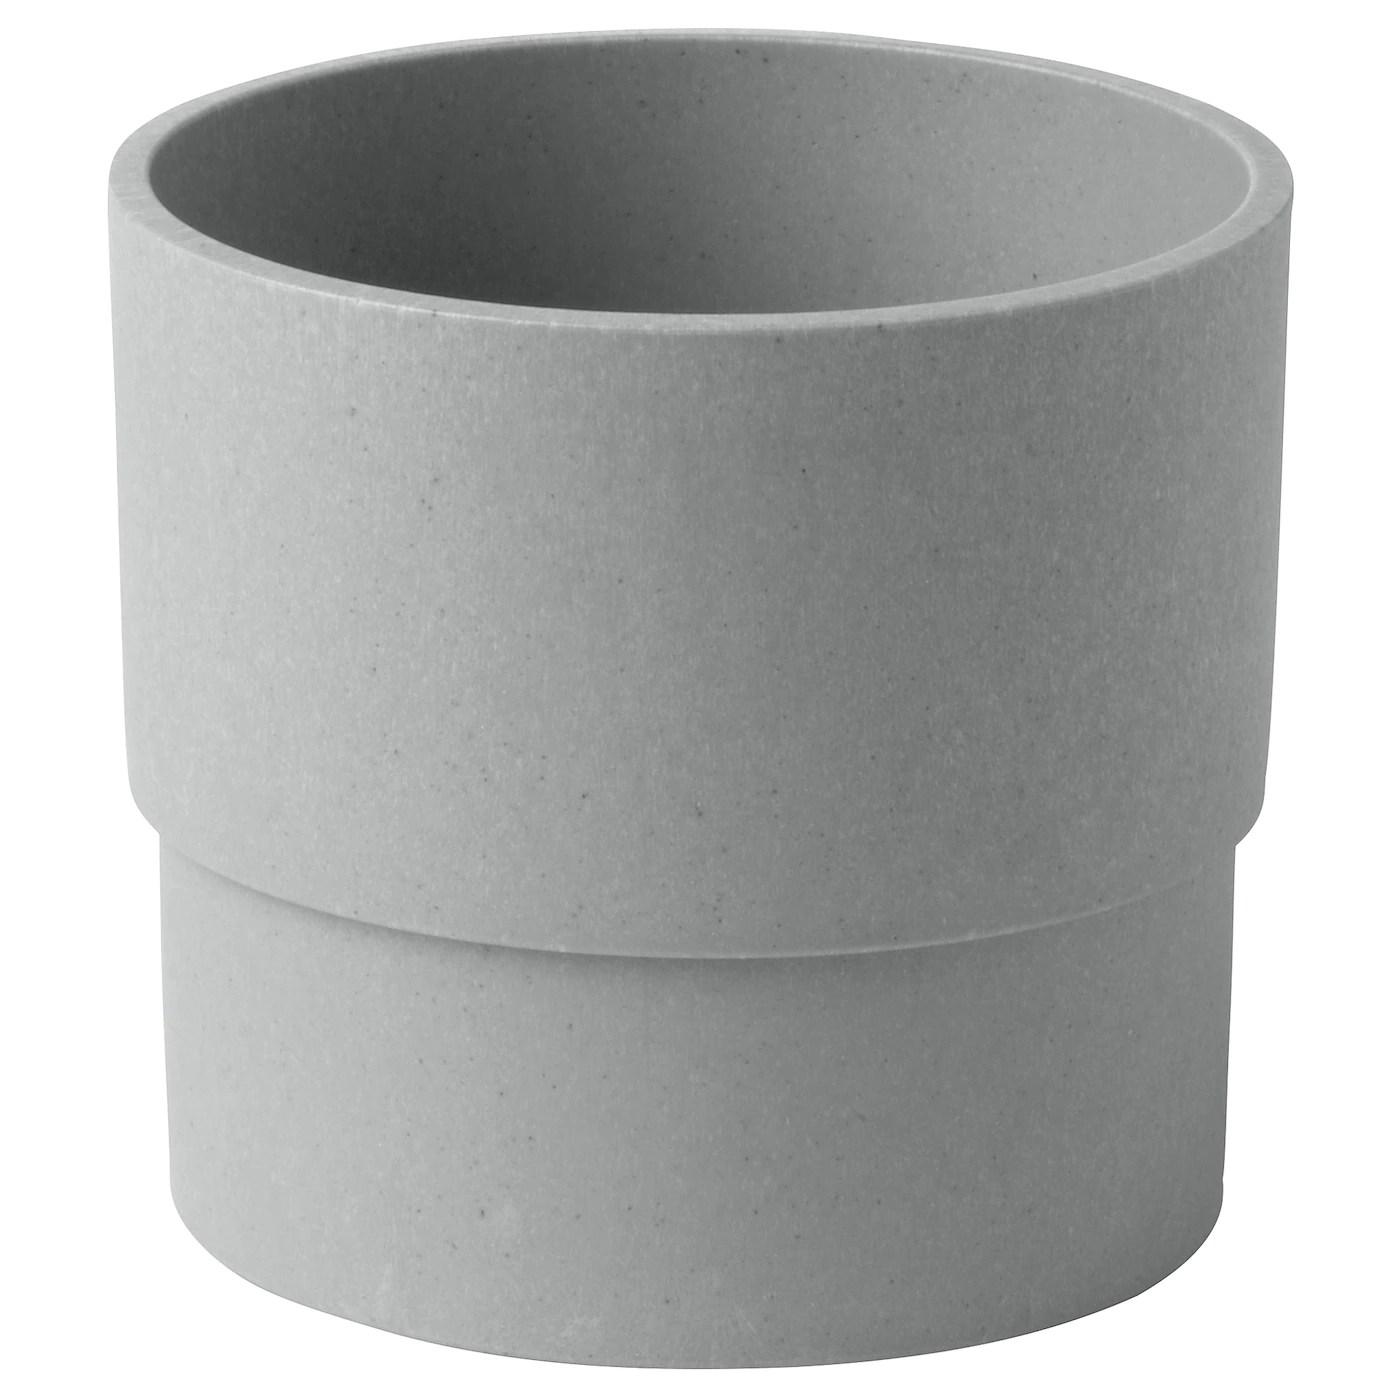 Ikea Planters Large Outdoor Plant Pots And Large Outdoor Plant Pots Ikea